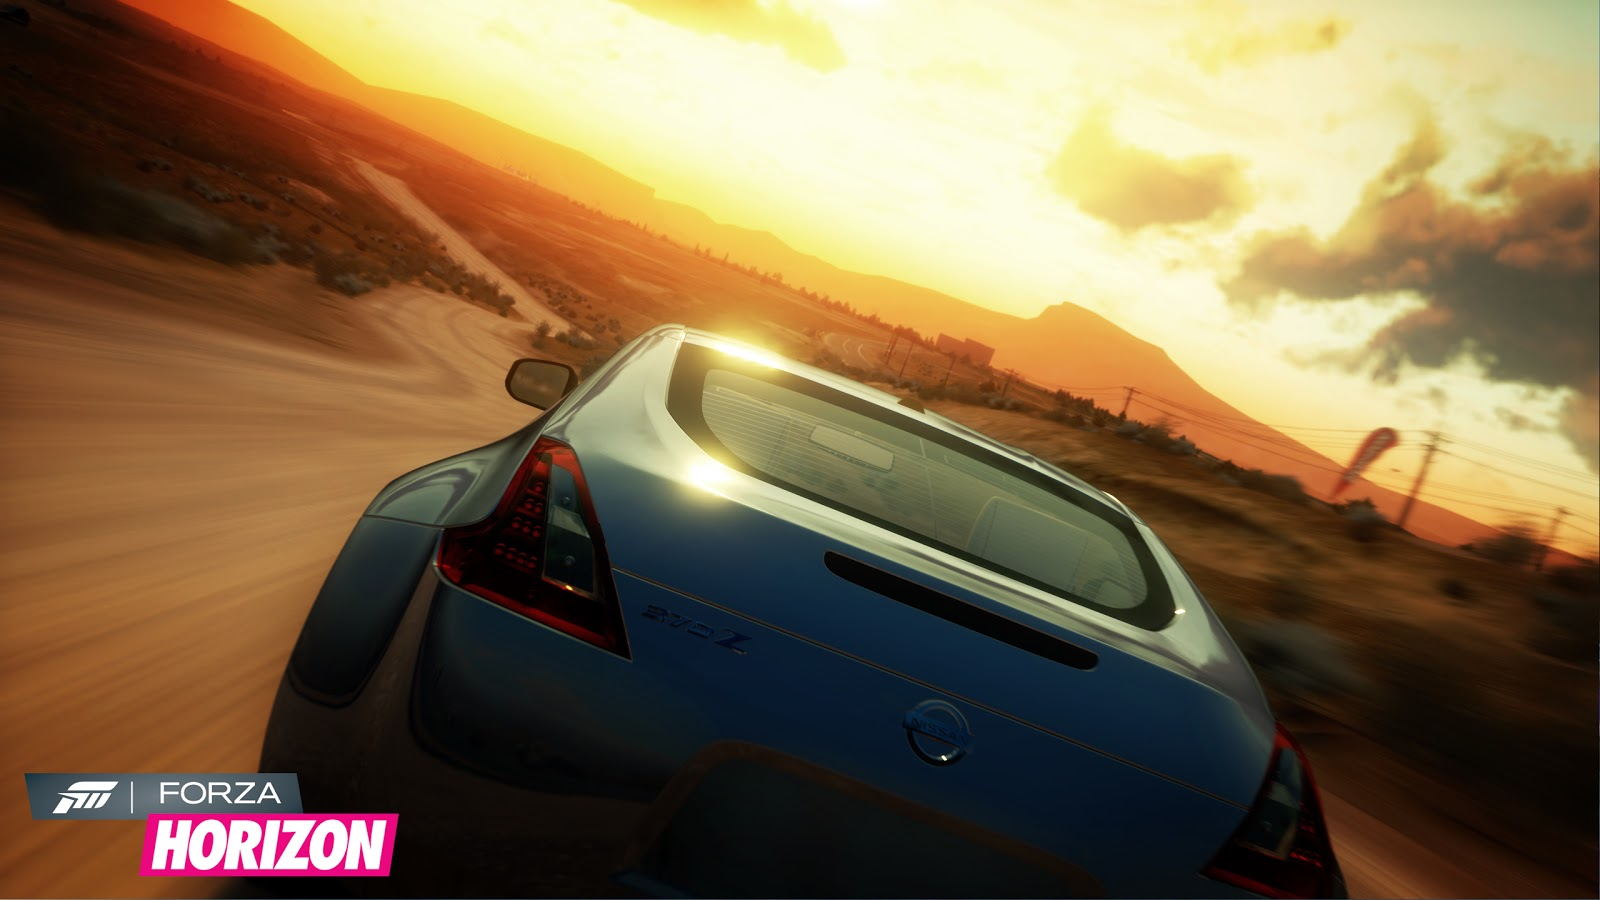 Forza Horizon HD & Widescreen Wallpaper 0.0457264775476773